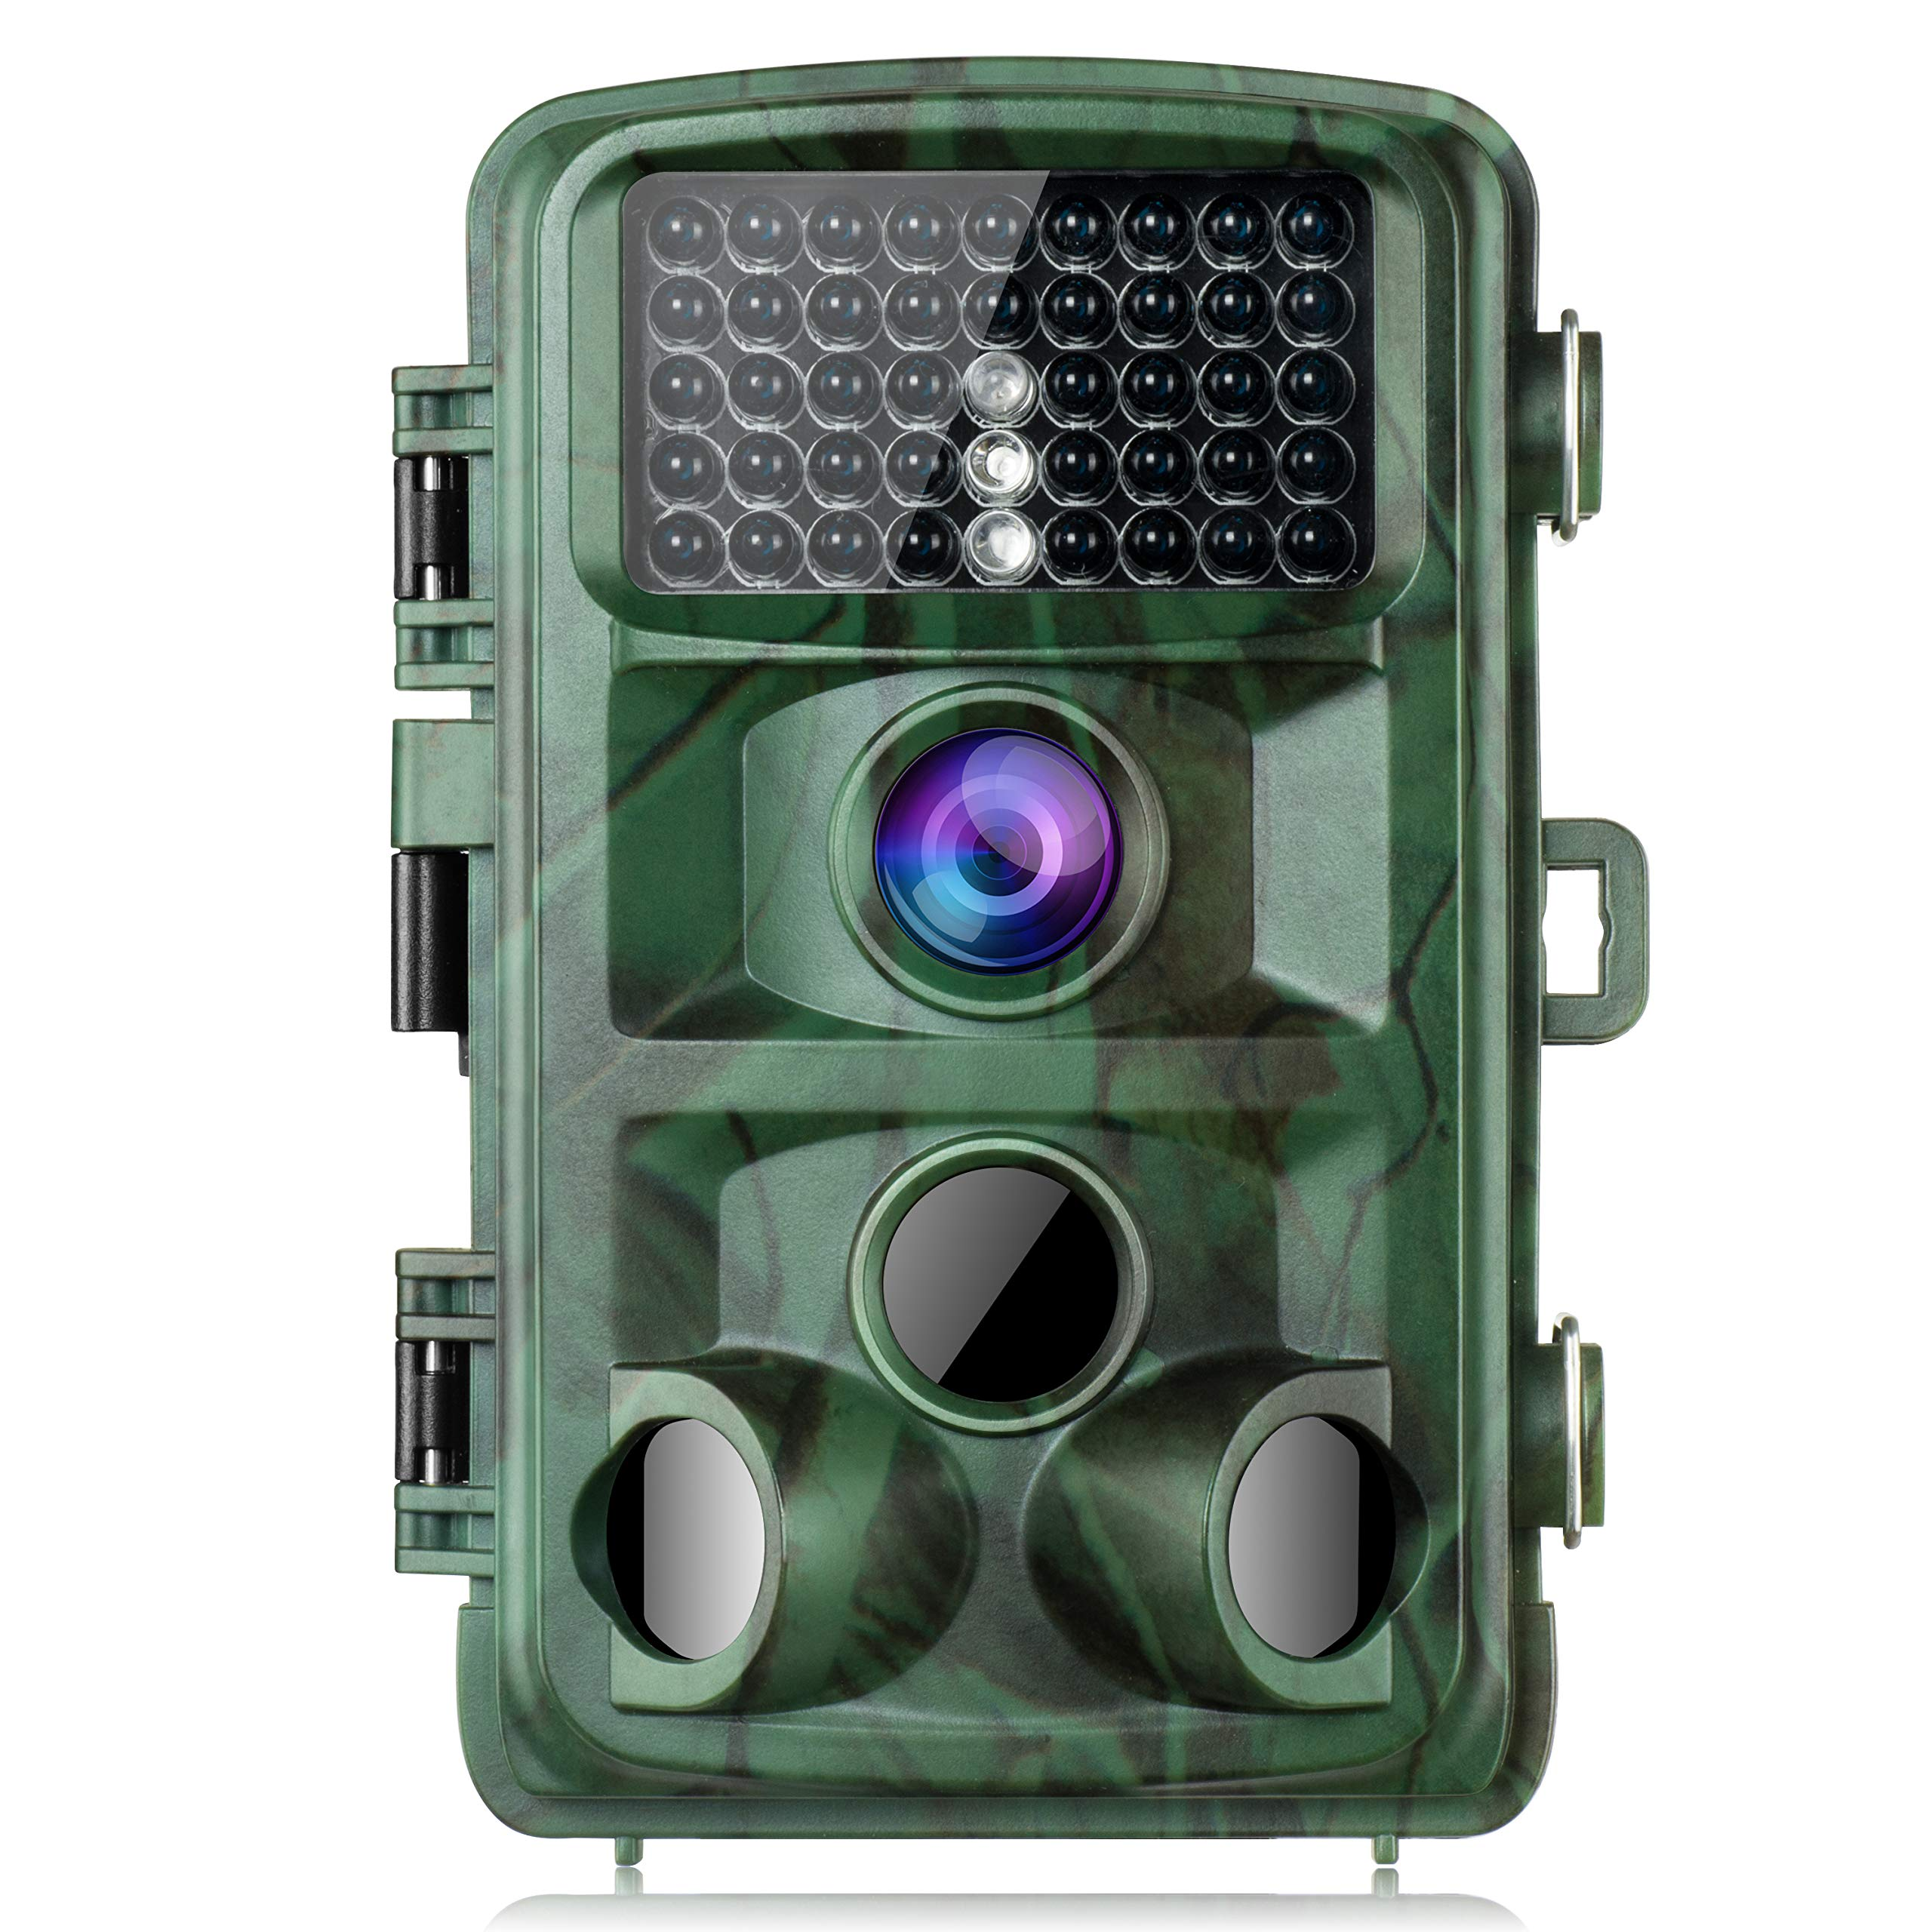 TOGUARD Trail Camera 14MP 1080P Game Camera with Night Vision Motion Activated Waterproof Wildlife Hunting Cam 120° Detection with 0.3s Trigger Speed 2.4'' LCD IR LEDs by TOGUARD